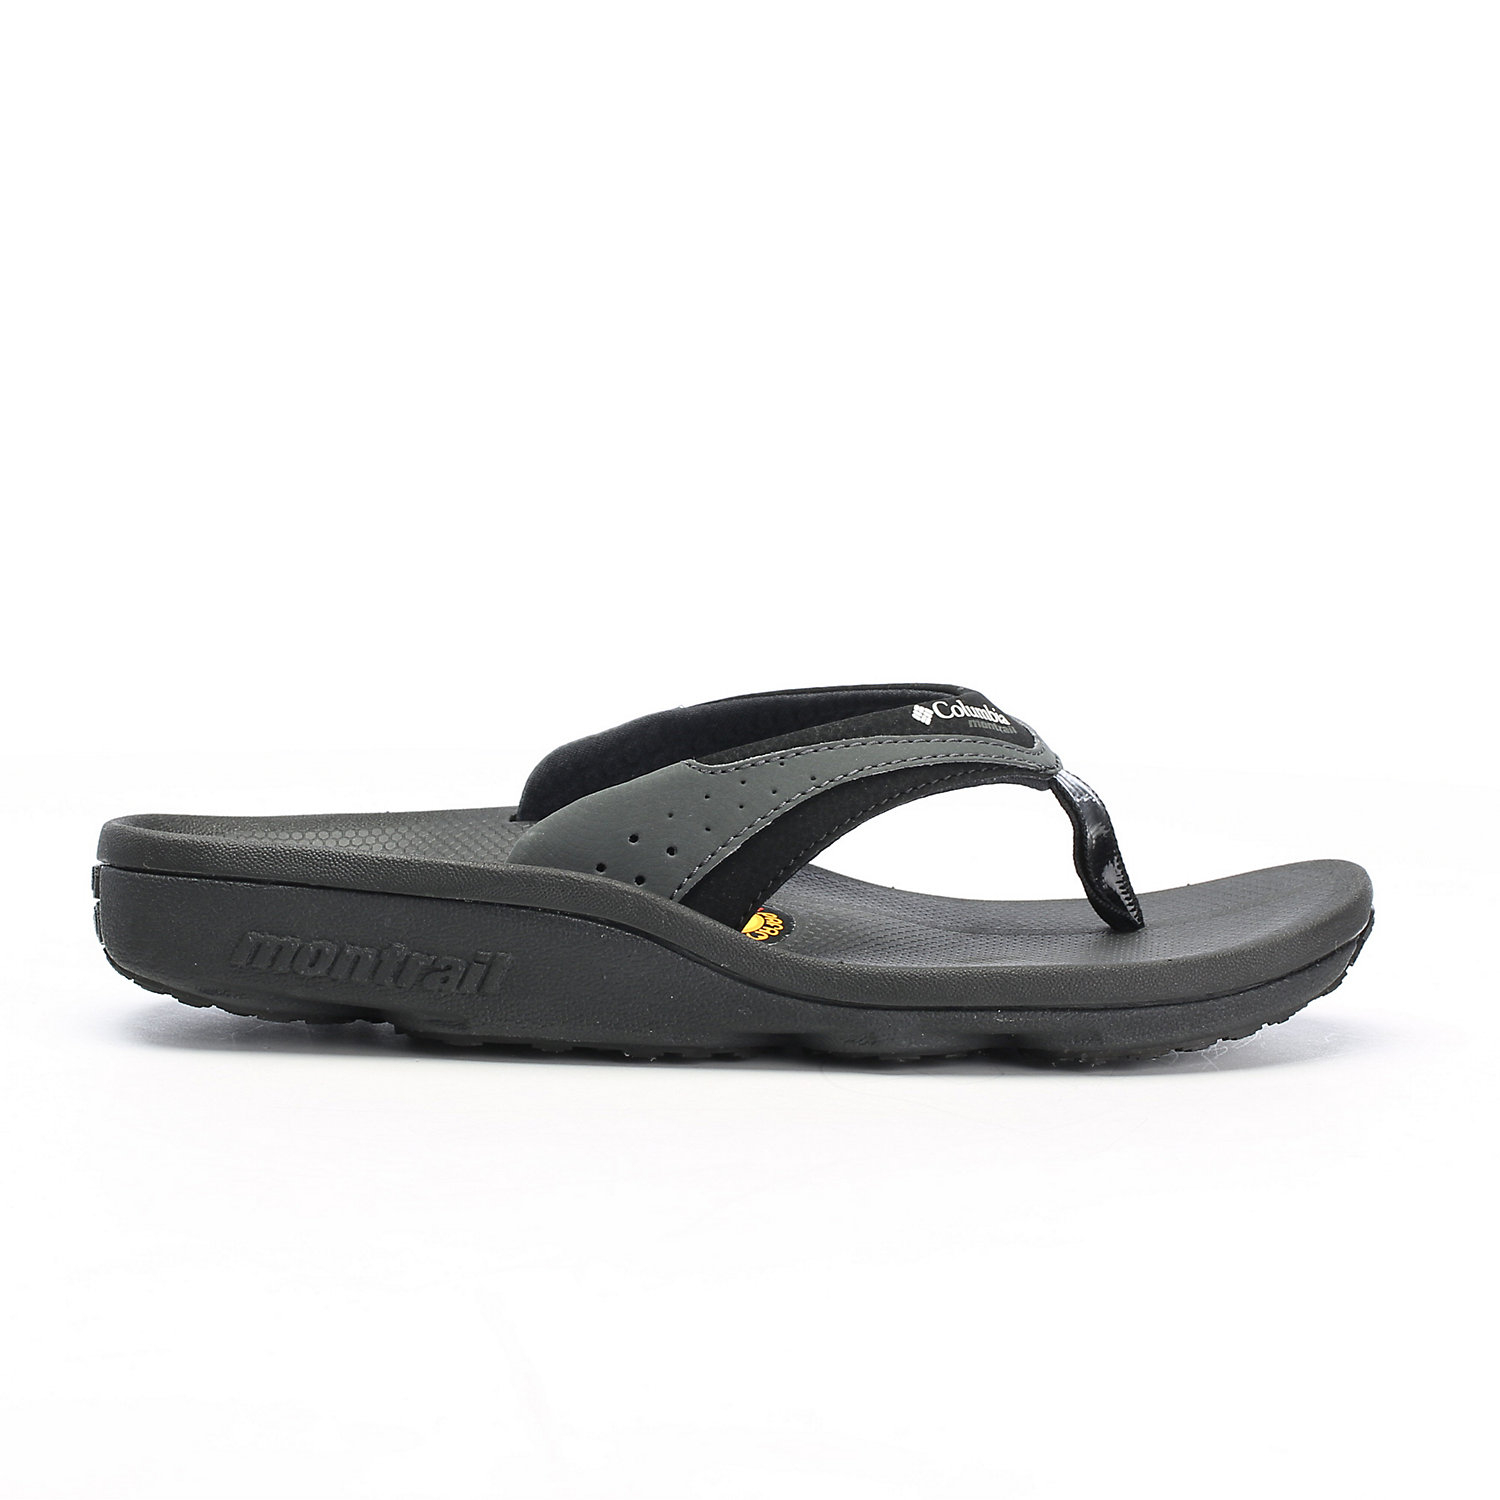 good service hot product exceptional range of styles and colors Montrail Women's Molokini II Sandal